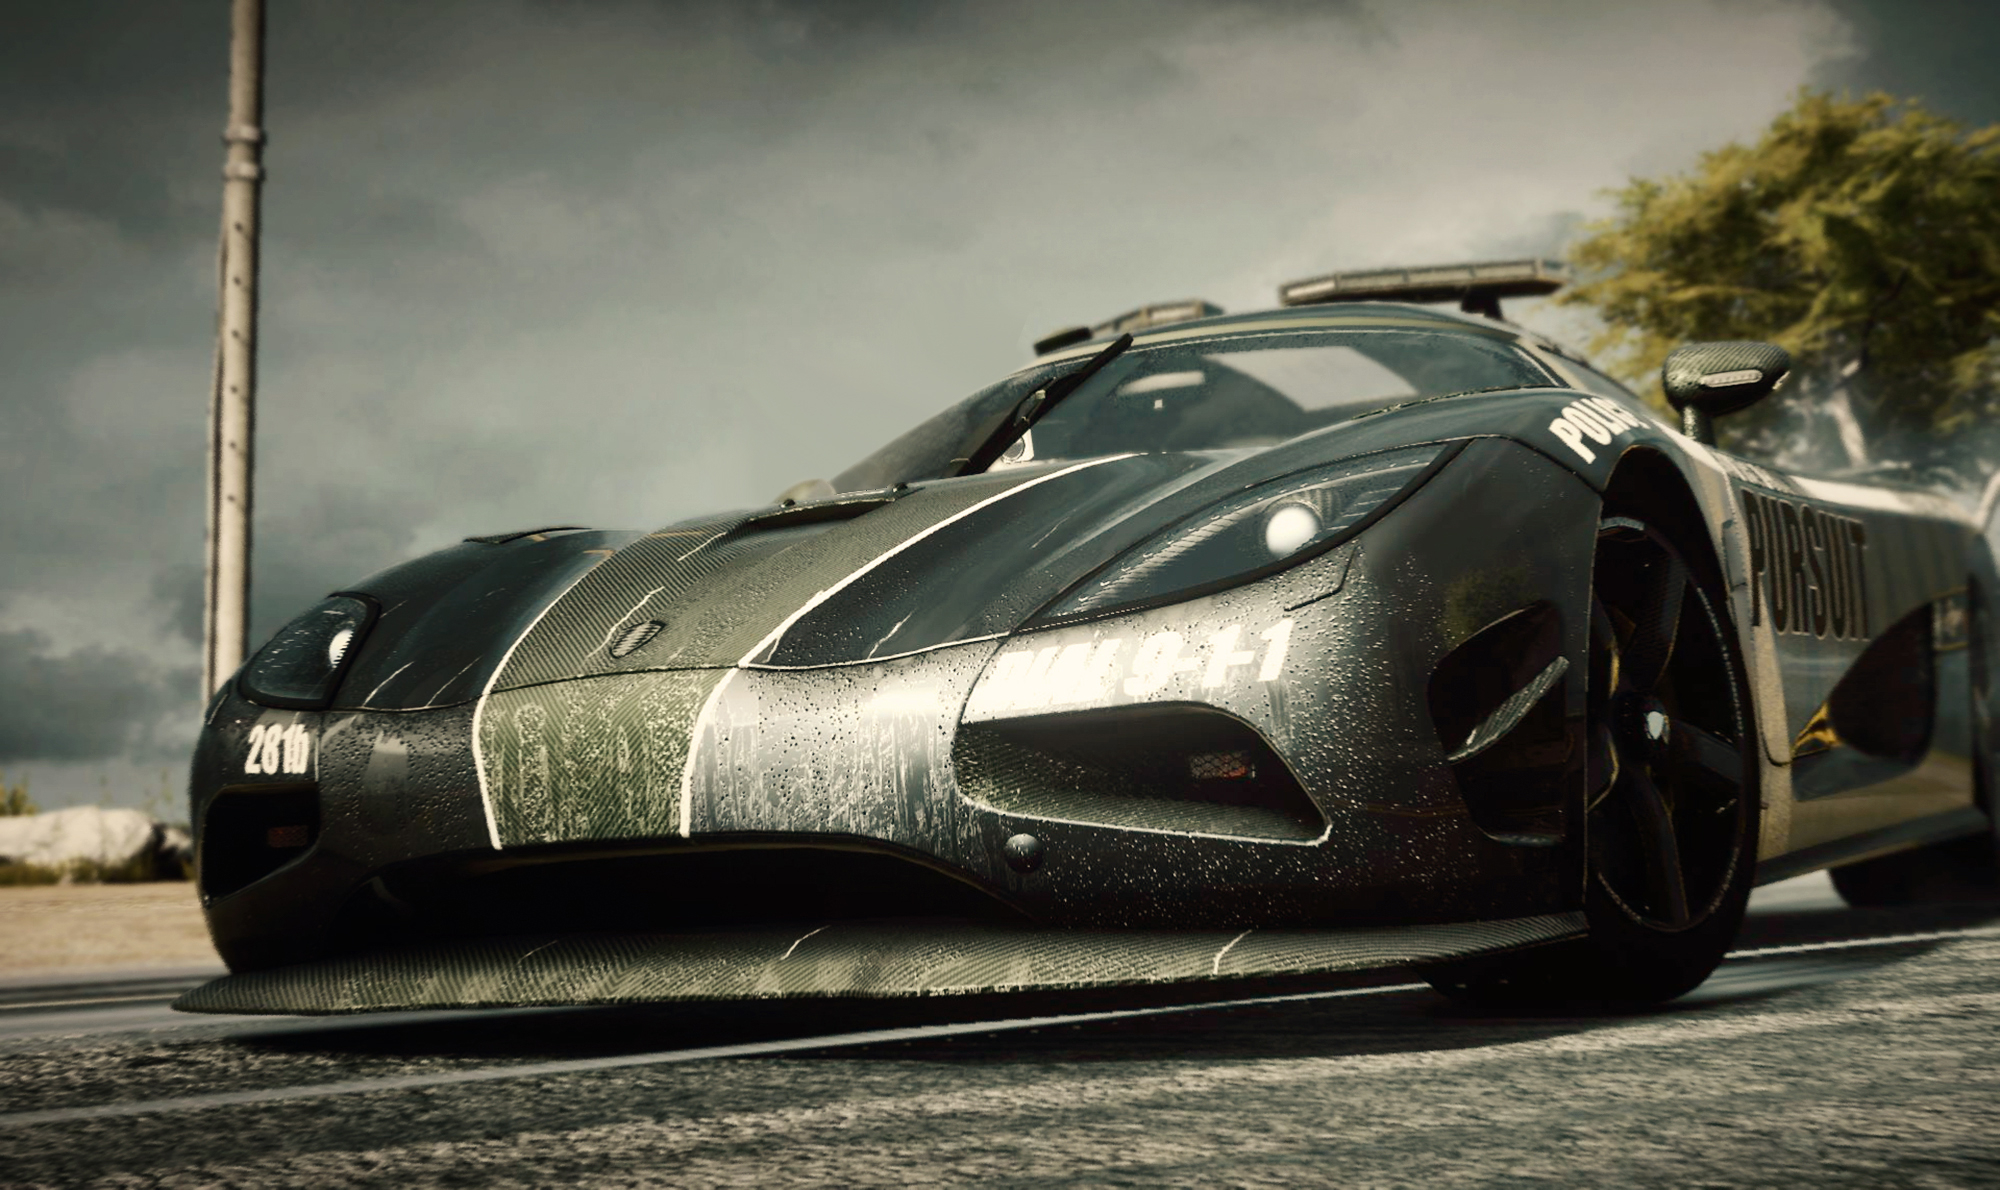 matchmaking need for speed rivals Need for speed rivals will be pitting cops need for speed: rivals shows its ultimate alldrive is a much large approach to online play and matchmaking.